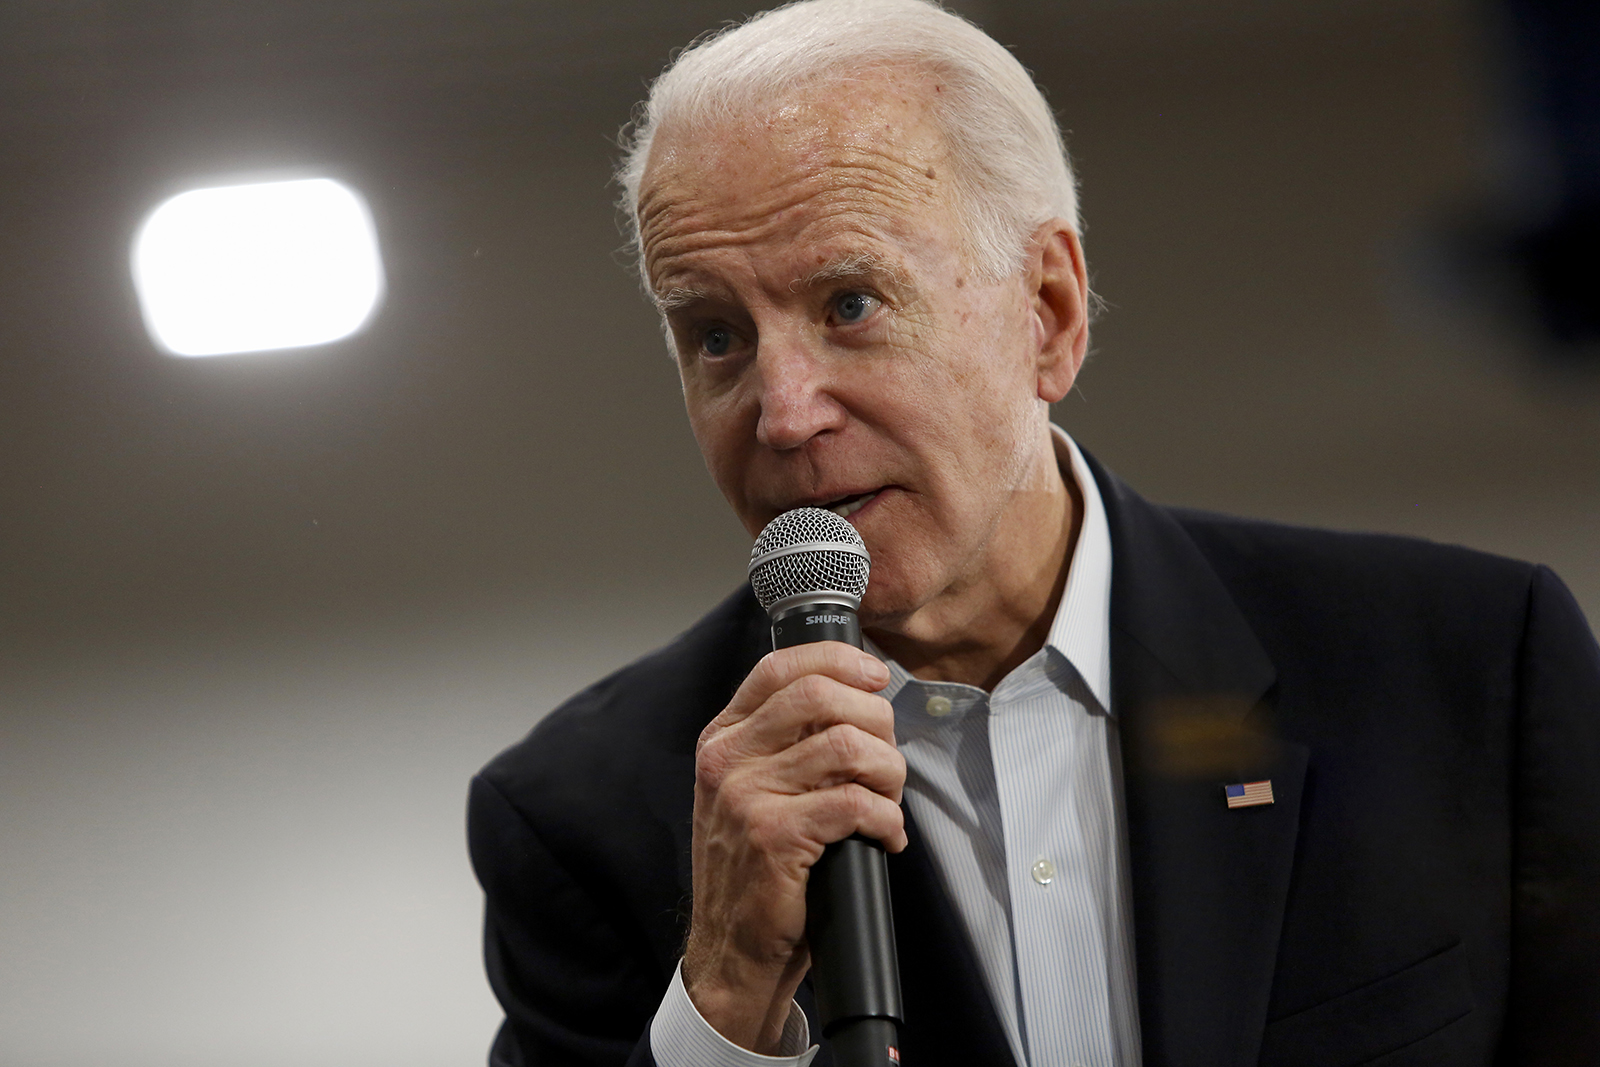 In this February 2, 2020 photo, Democratic presidential nominee Joe Biden speaks during a campaign event at Hiatt Middle School in Des Moines, Iowa.